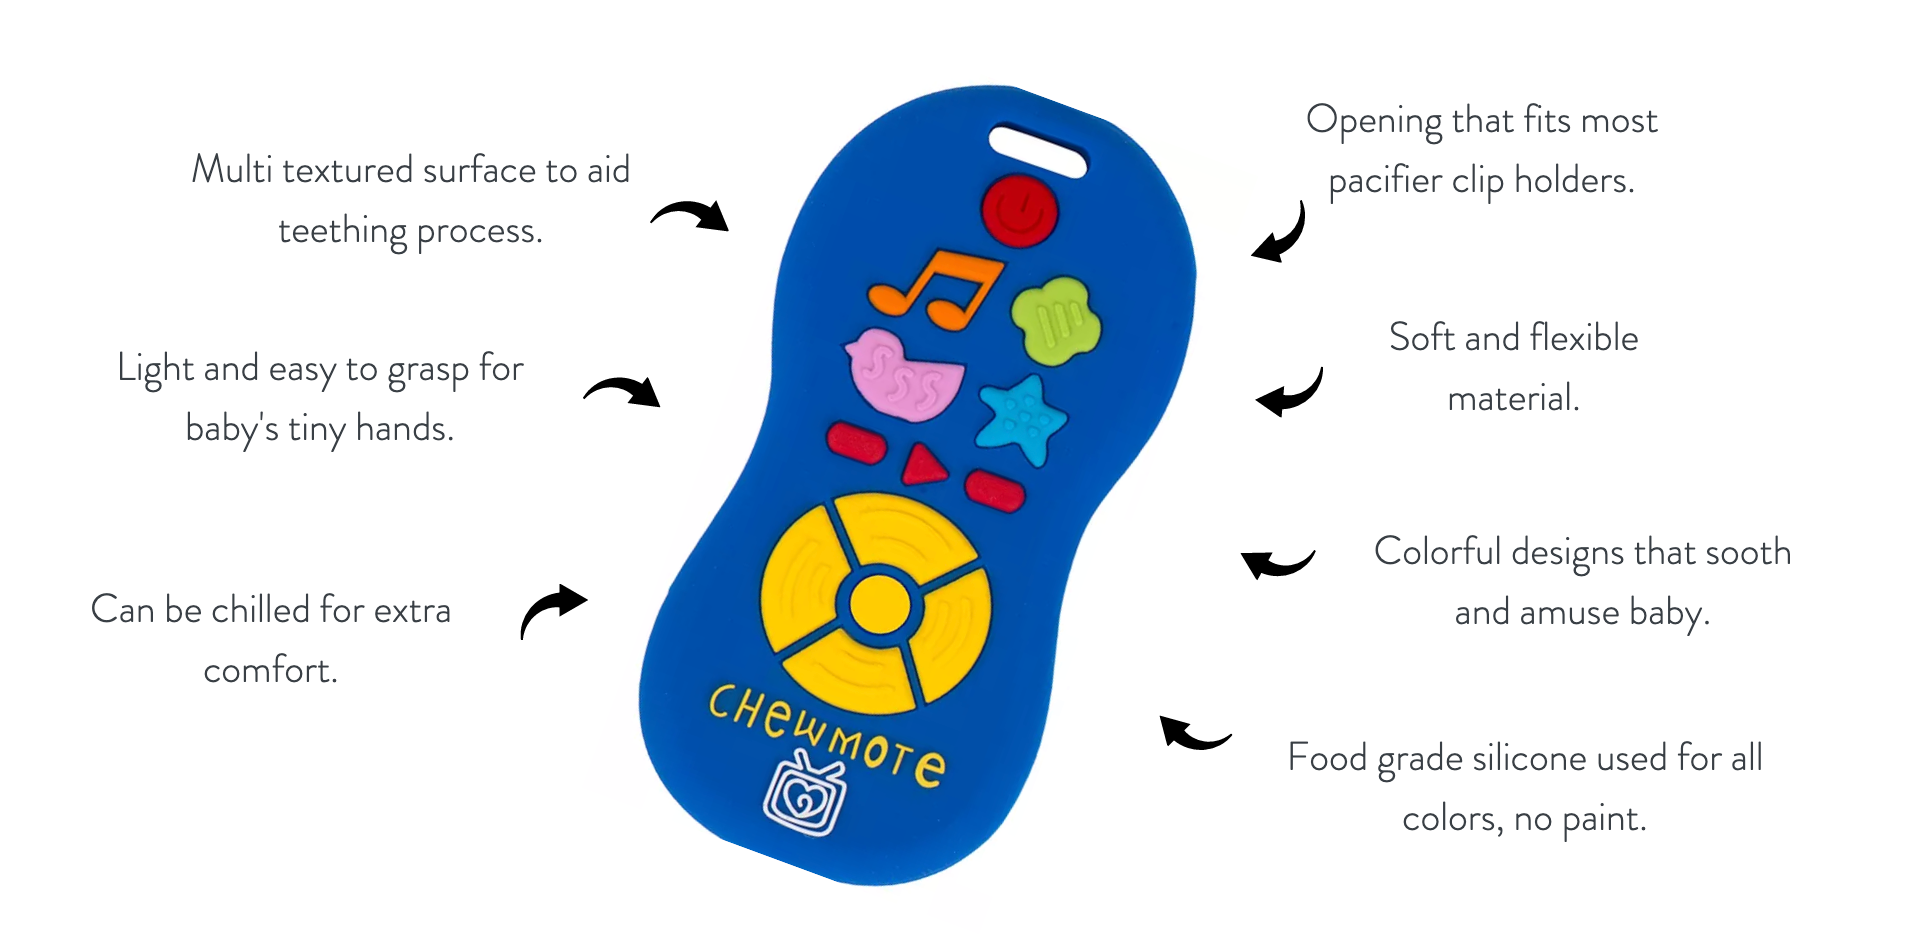 Silli Chews Exclusive Patented Technology Teething Toys